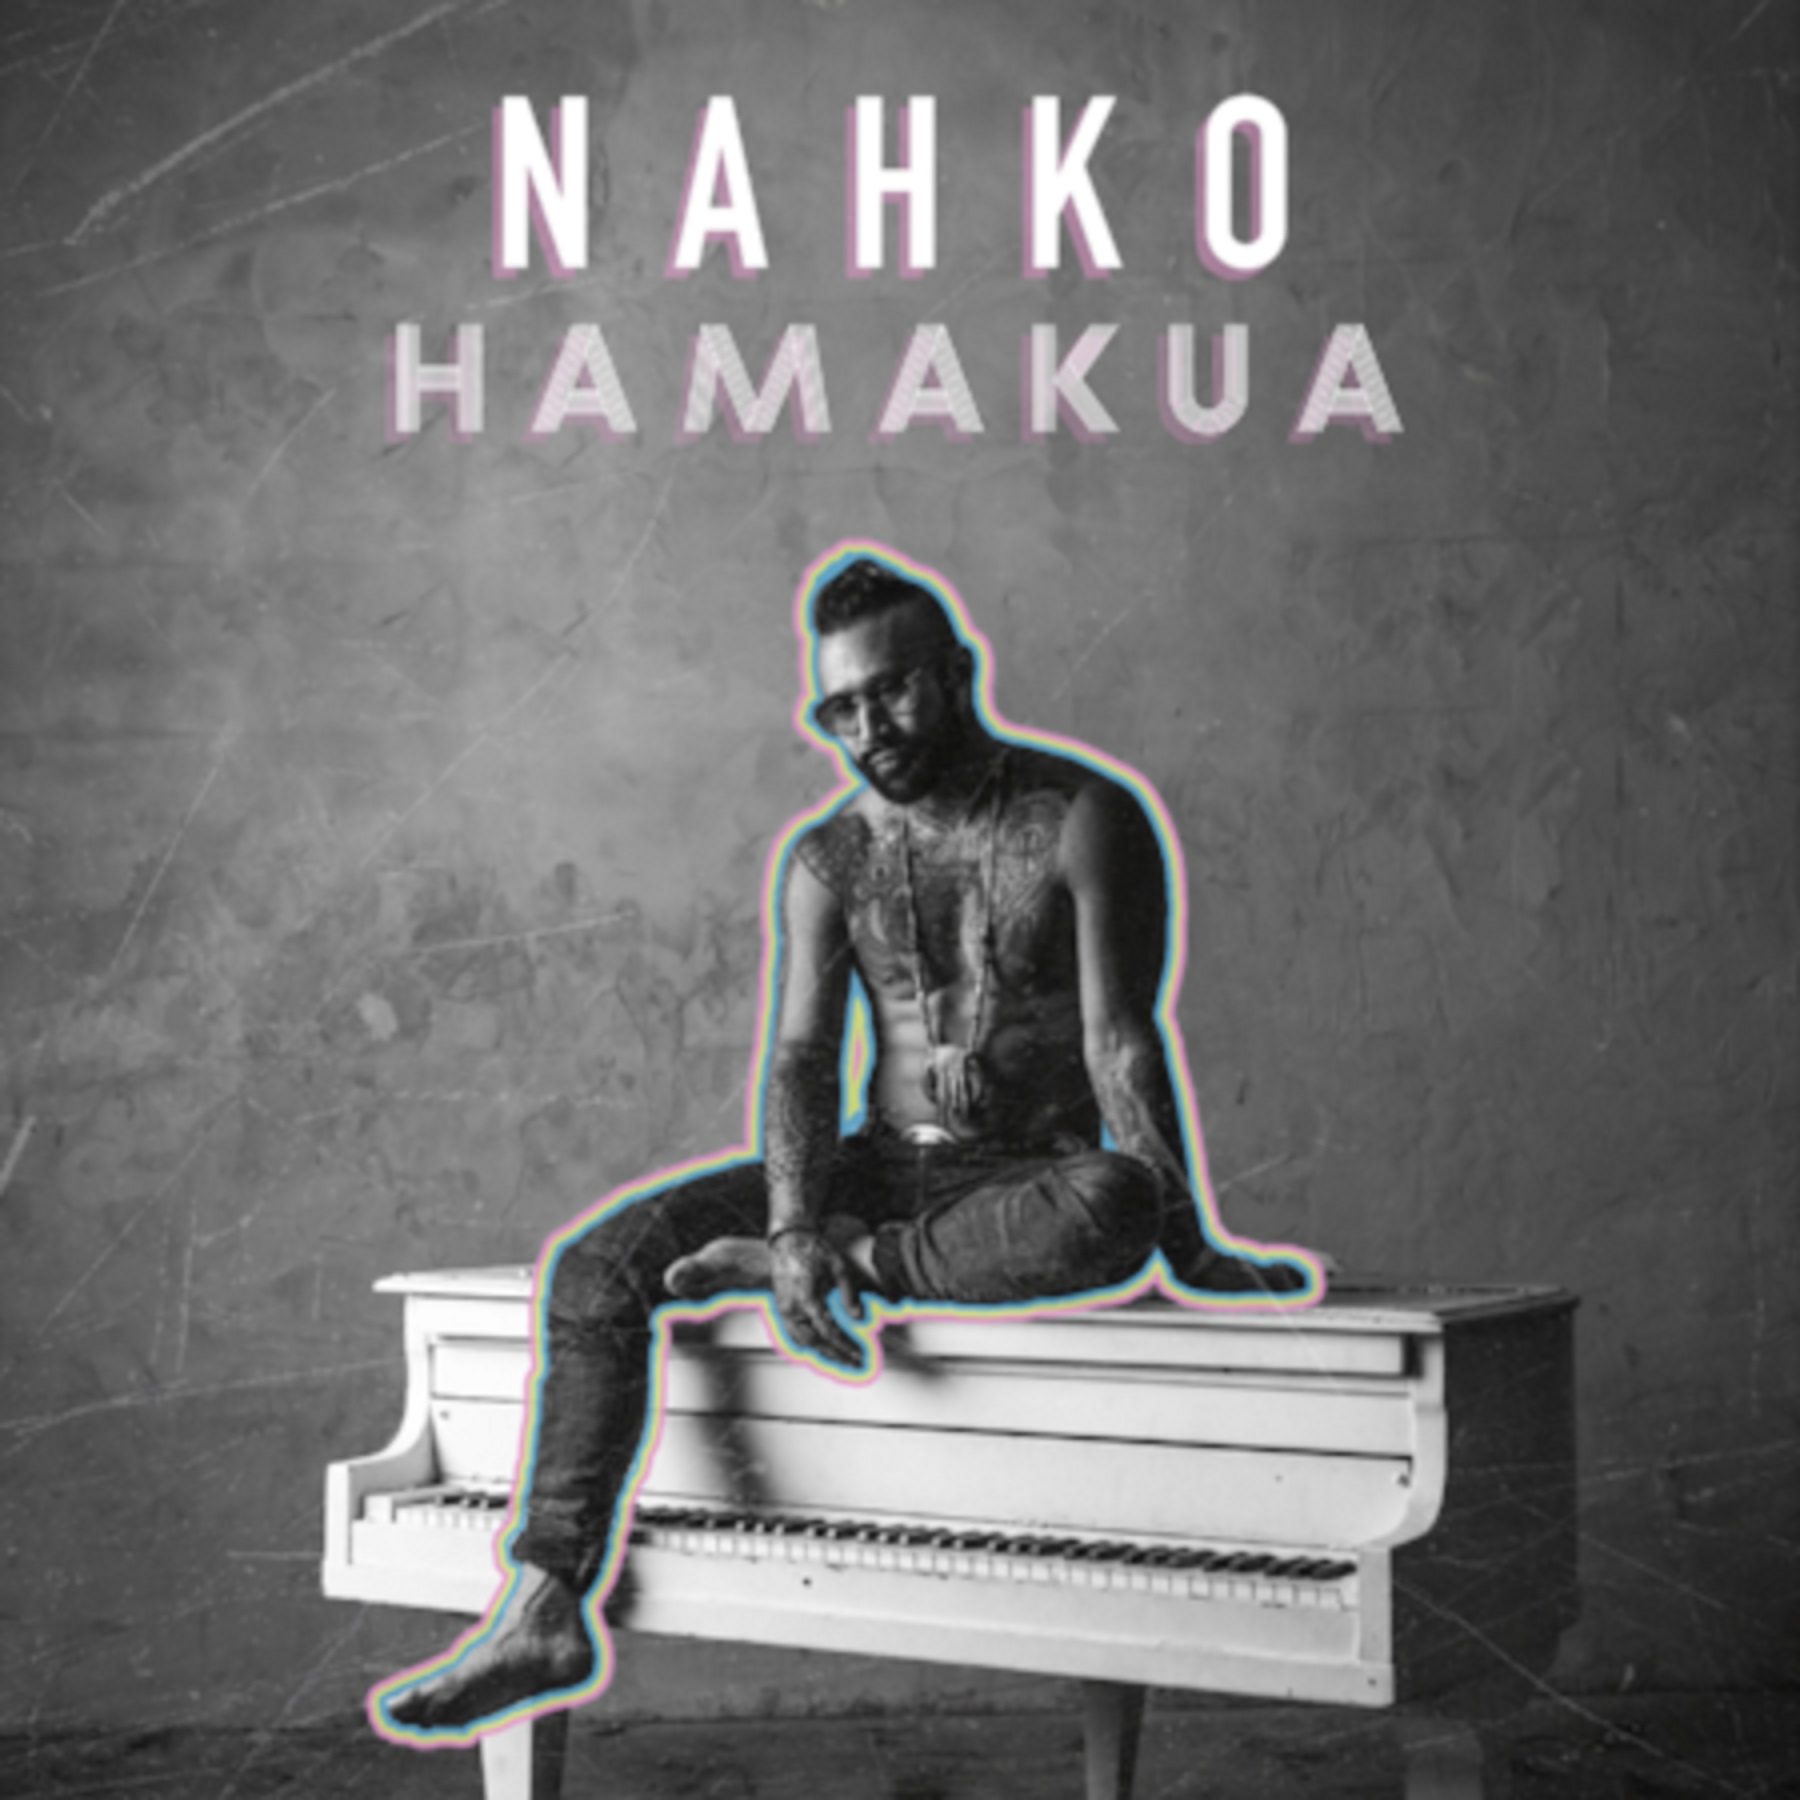 Nahko announces new acoustic EP 'Hamakua'